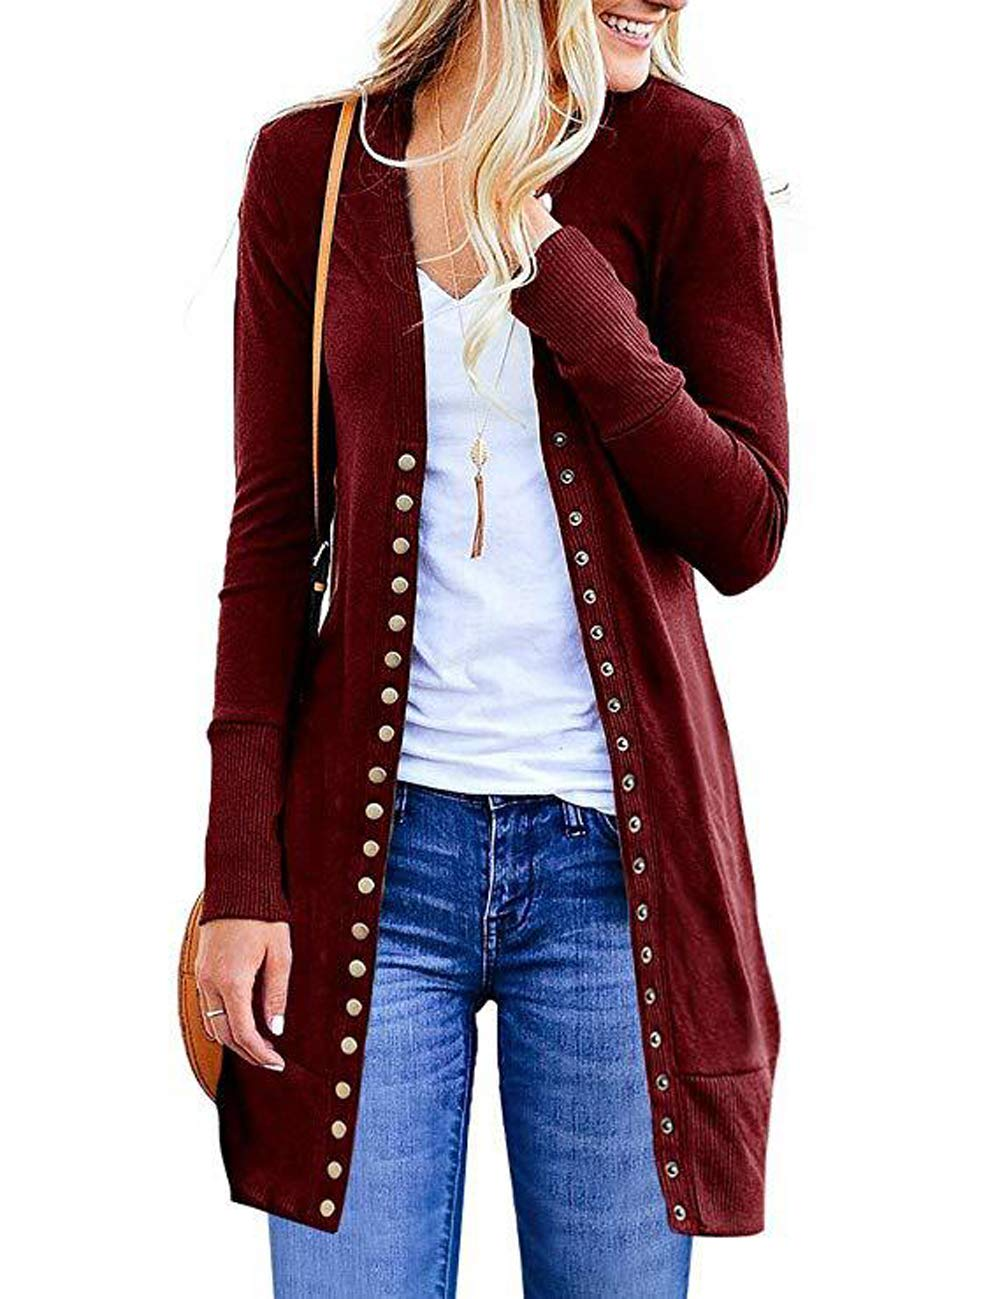 Fuwenni Women's Casual Soft V-Neck Long Sleeve Snap Button Down Knit Cardigan Sweater Wine Red L